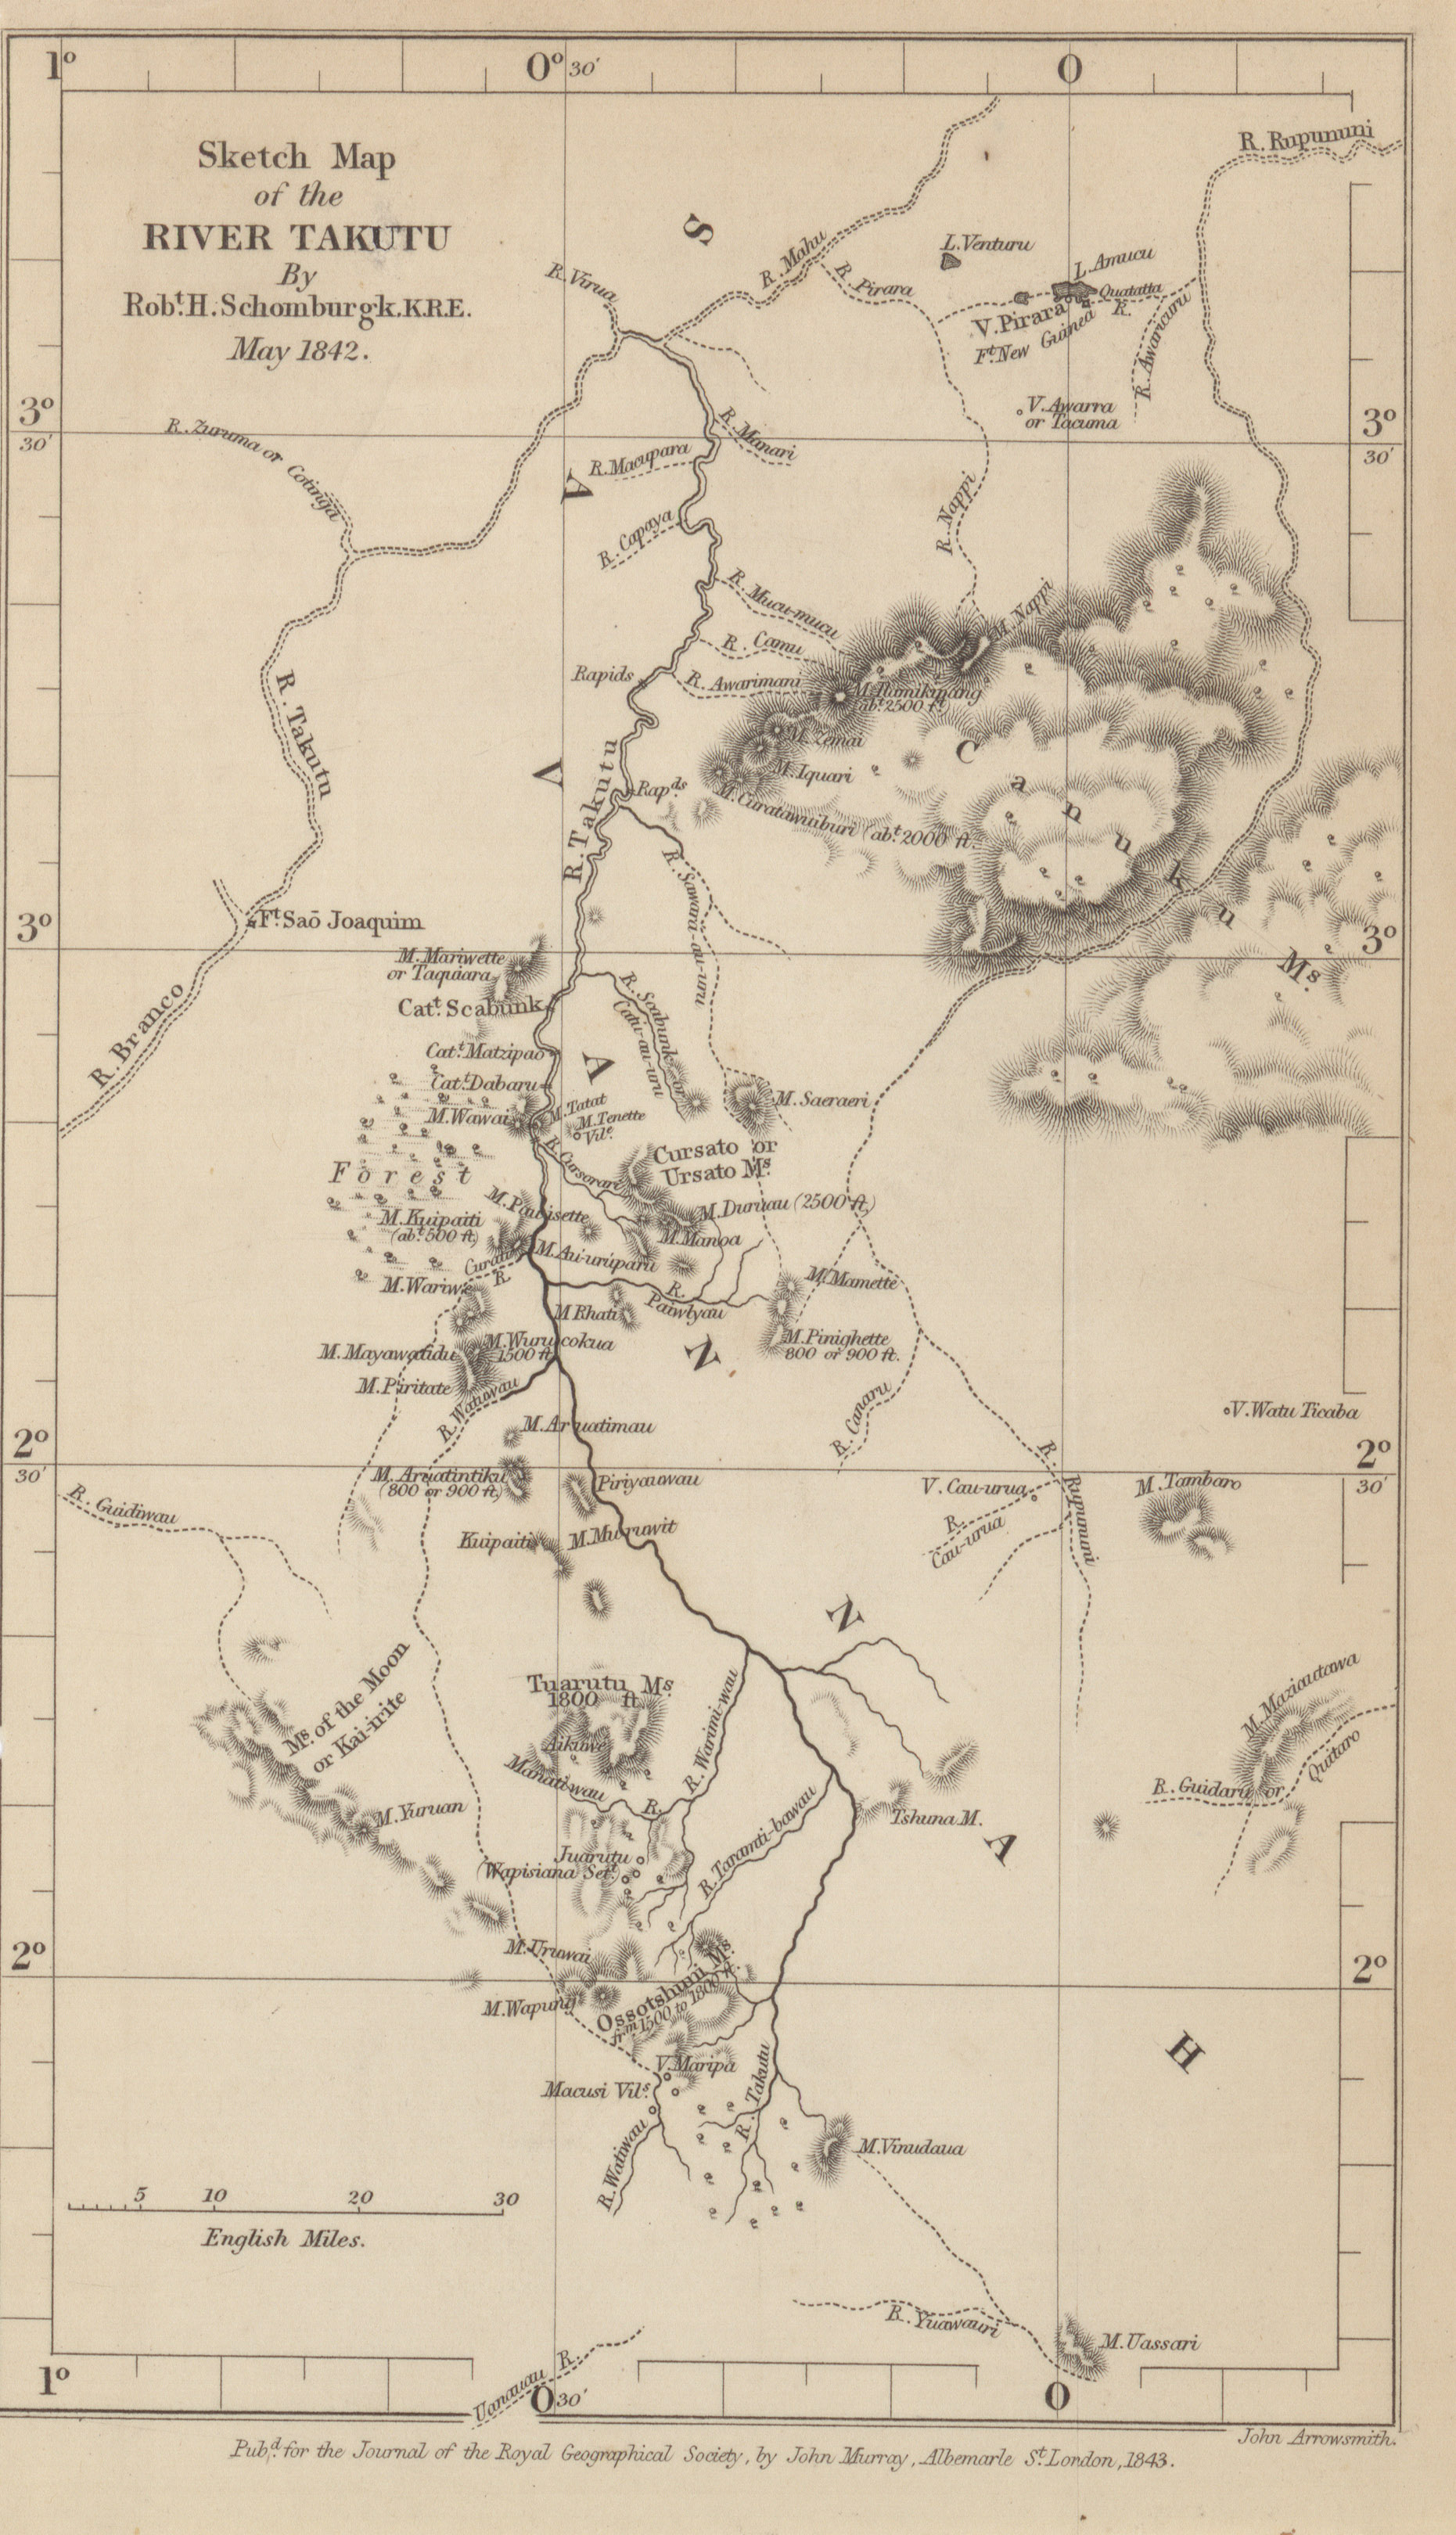 Maps from the Journal of the Royal Geographical Society of London